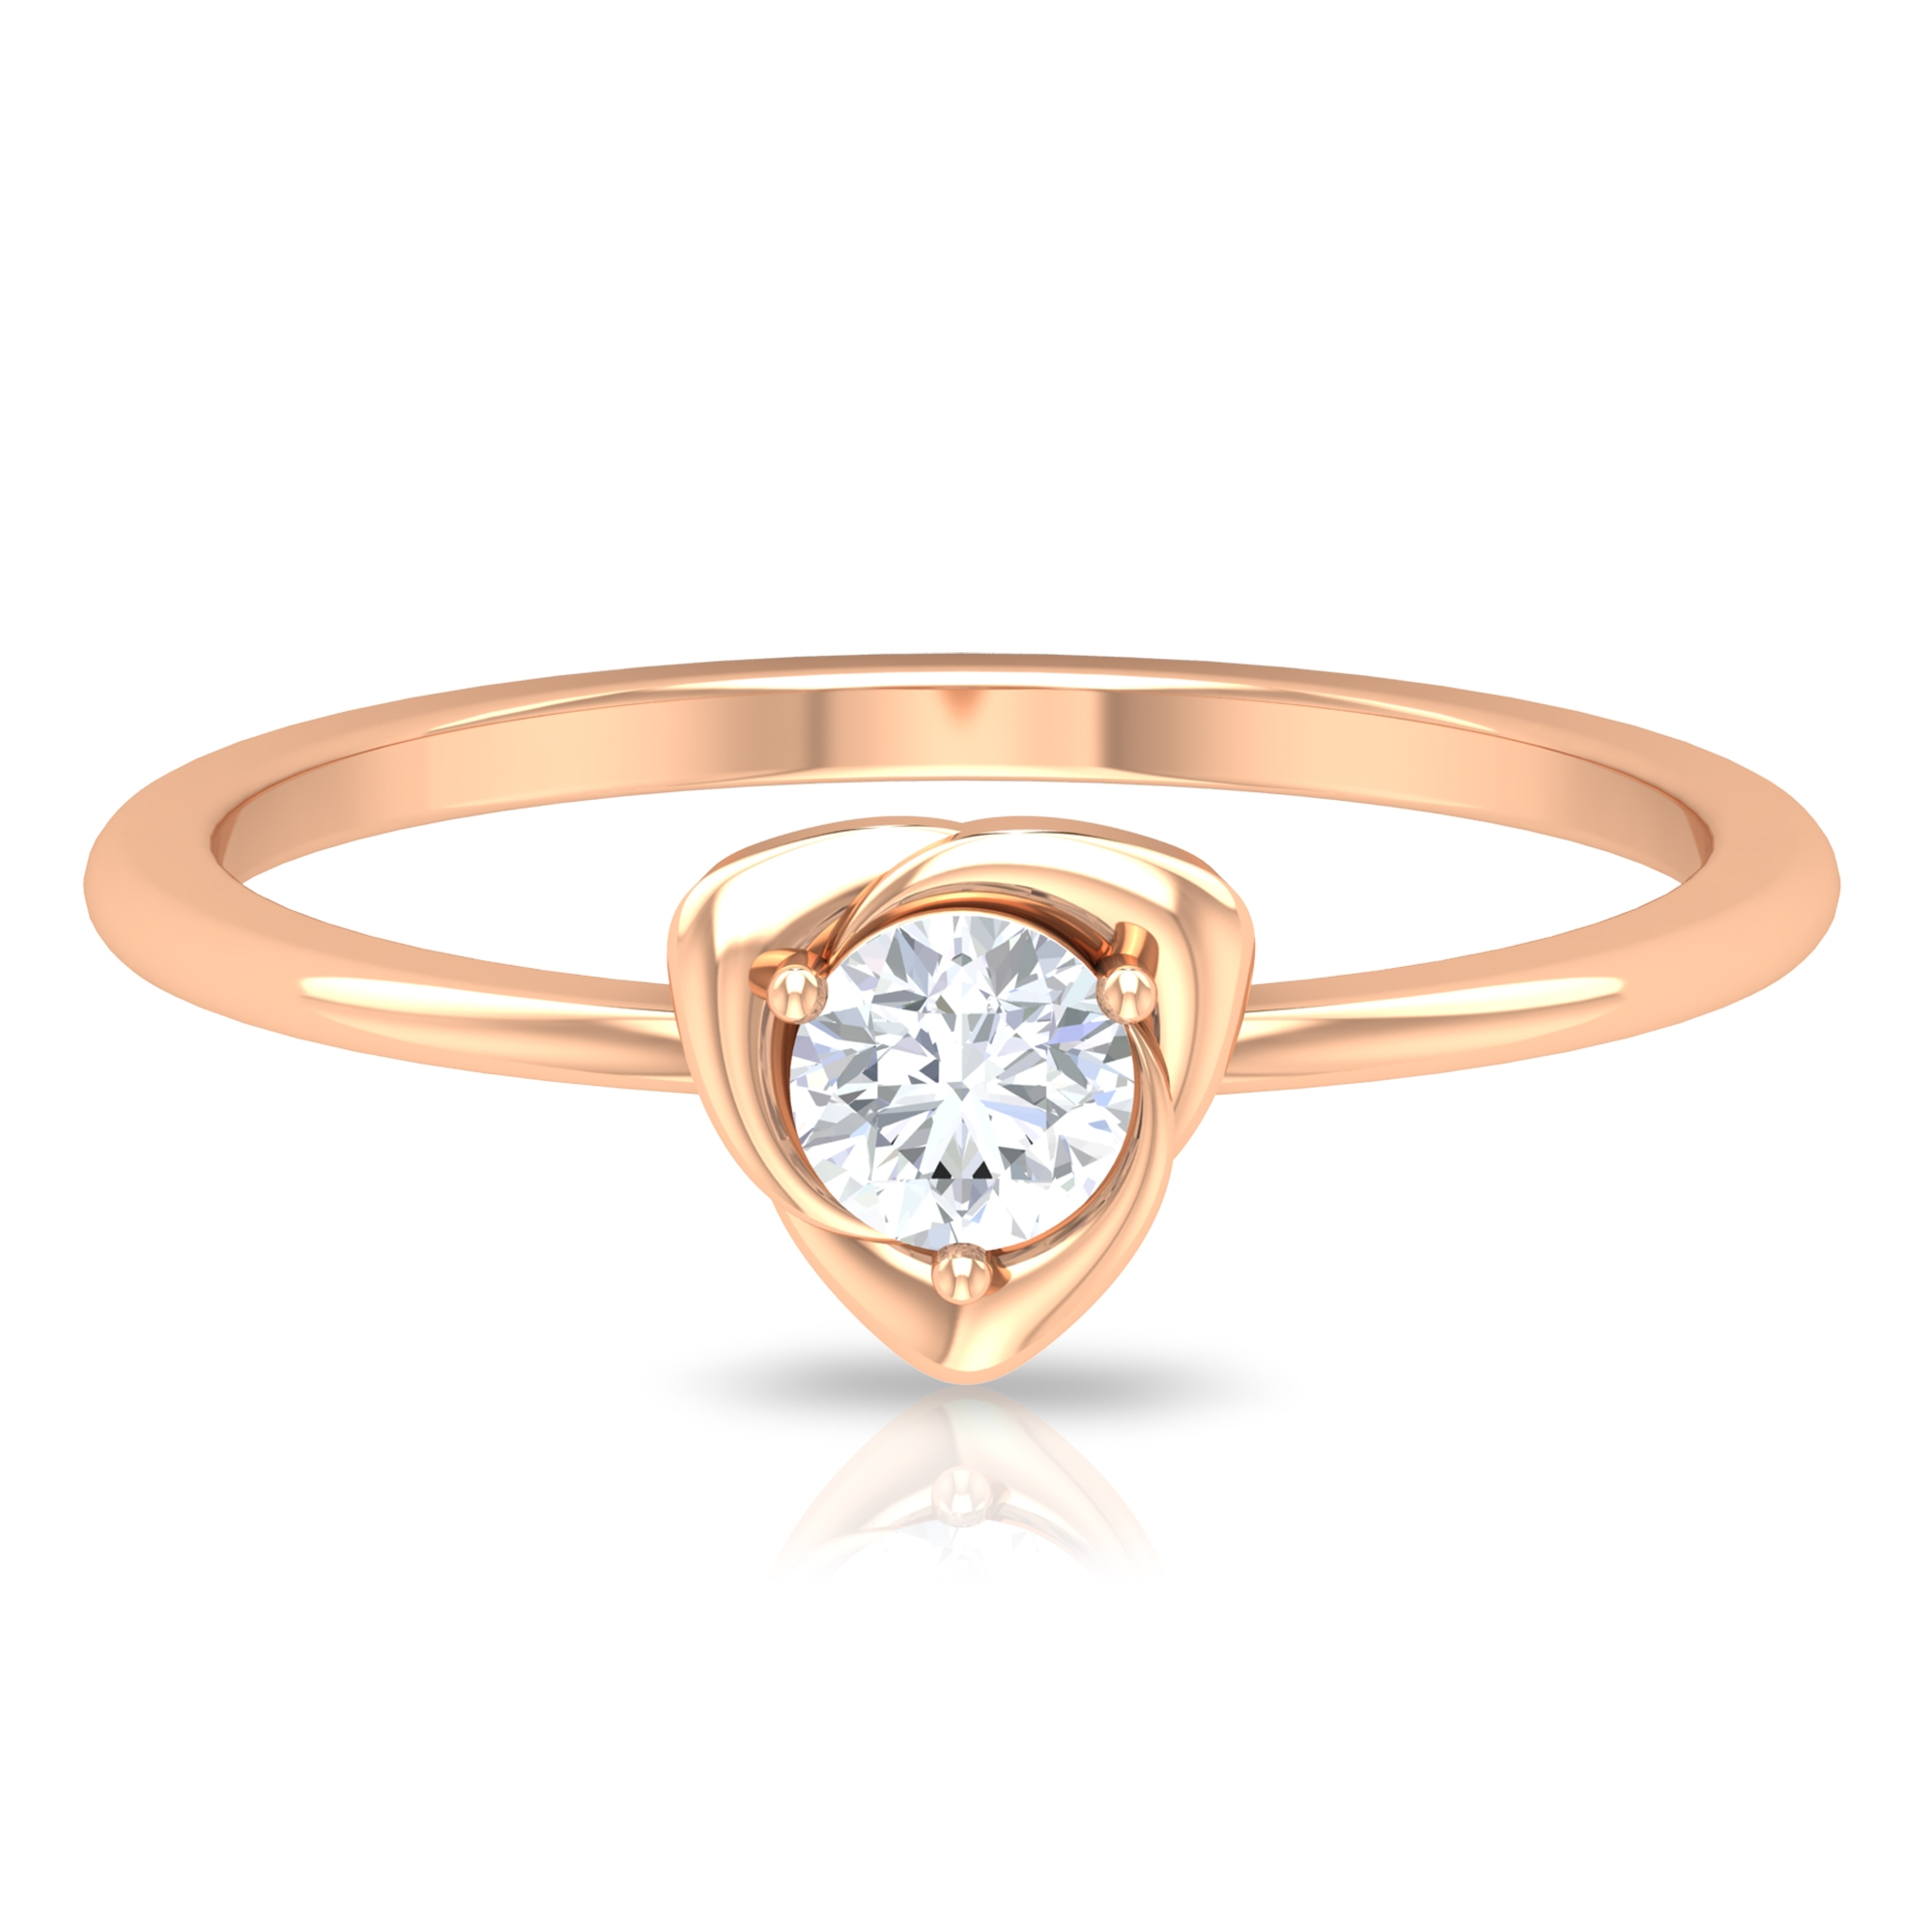 4 MM Round Cut Diamond Solitaire Flower Petal Ring in 3 Prong Setting